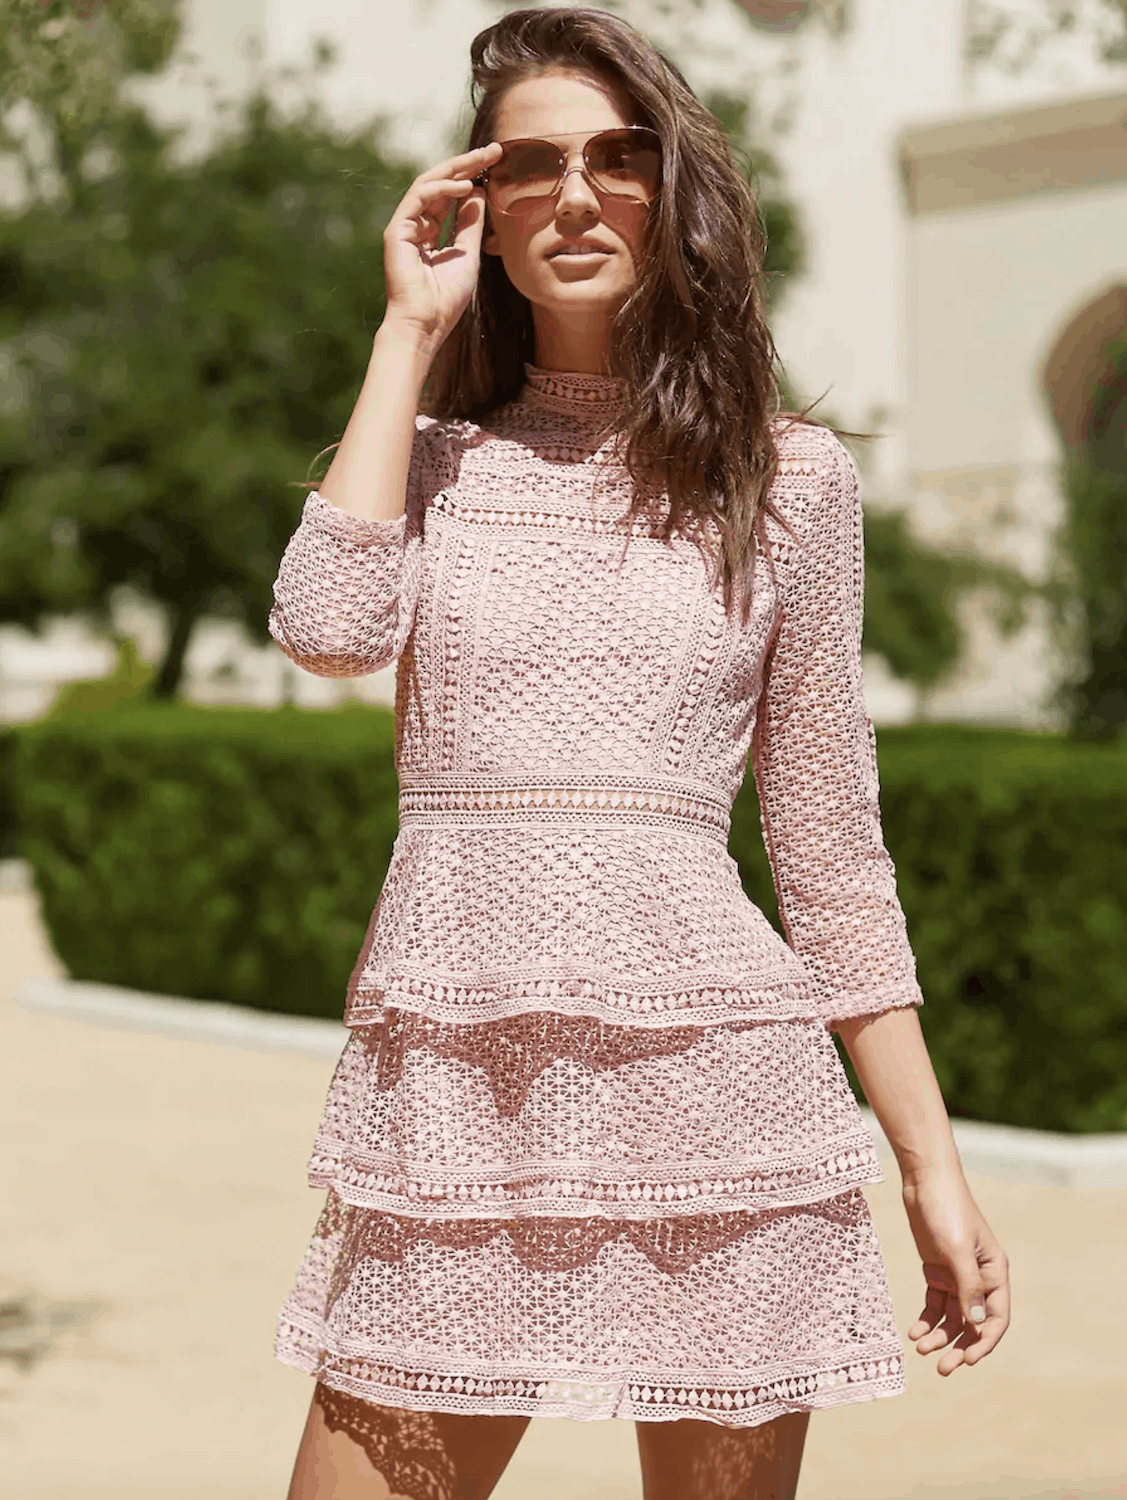 Bridal Shower Dresses for the Bride Tiered Guipure Pink Lace Dress